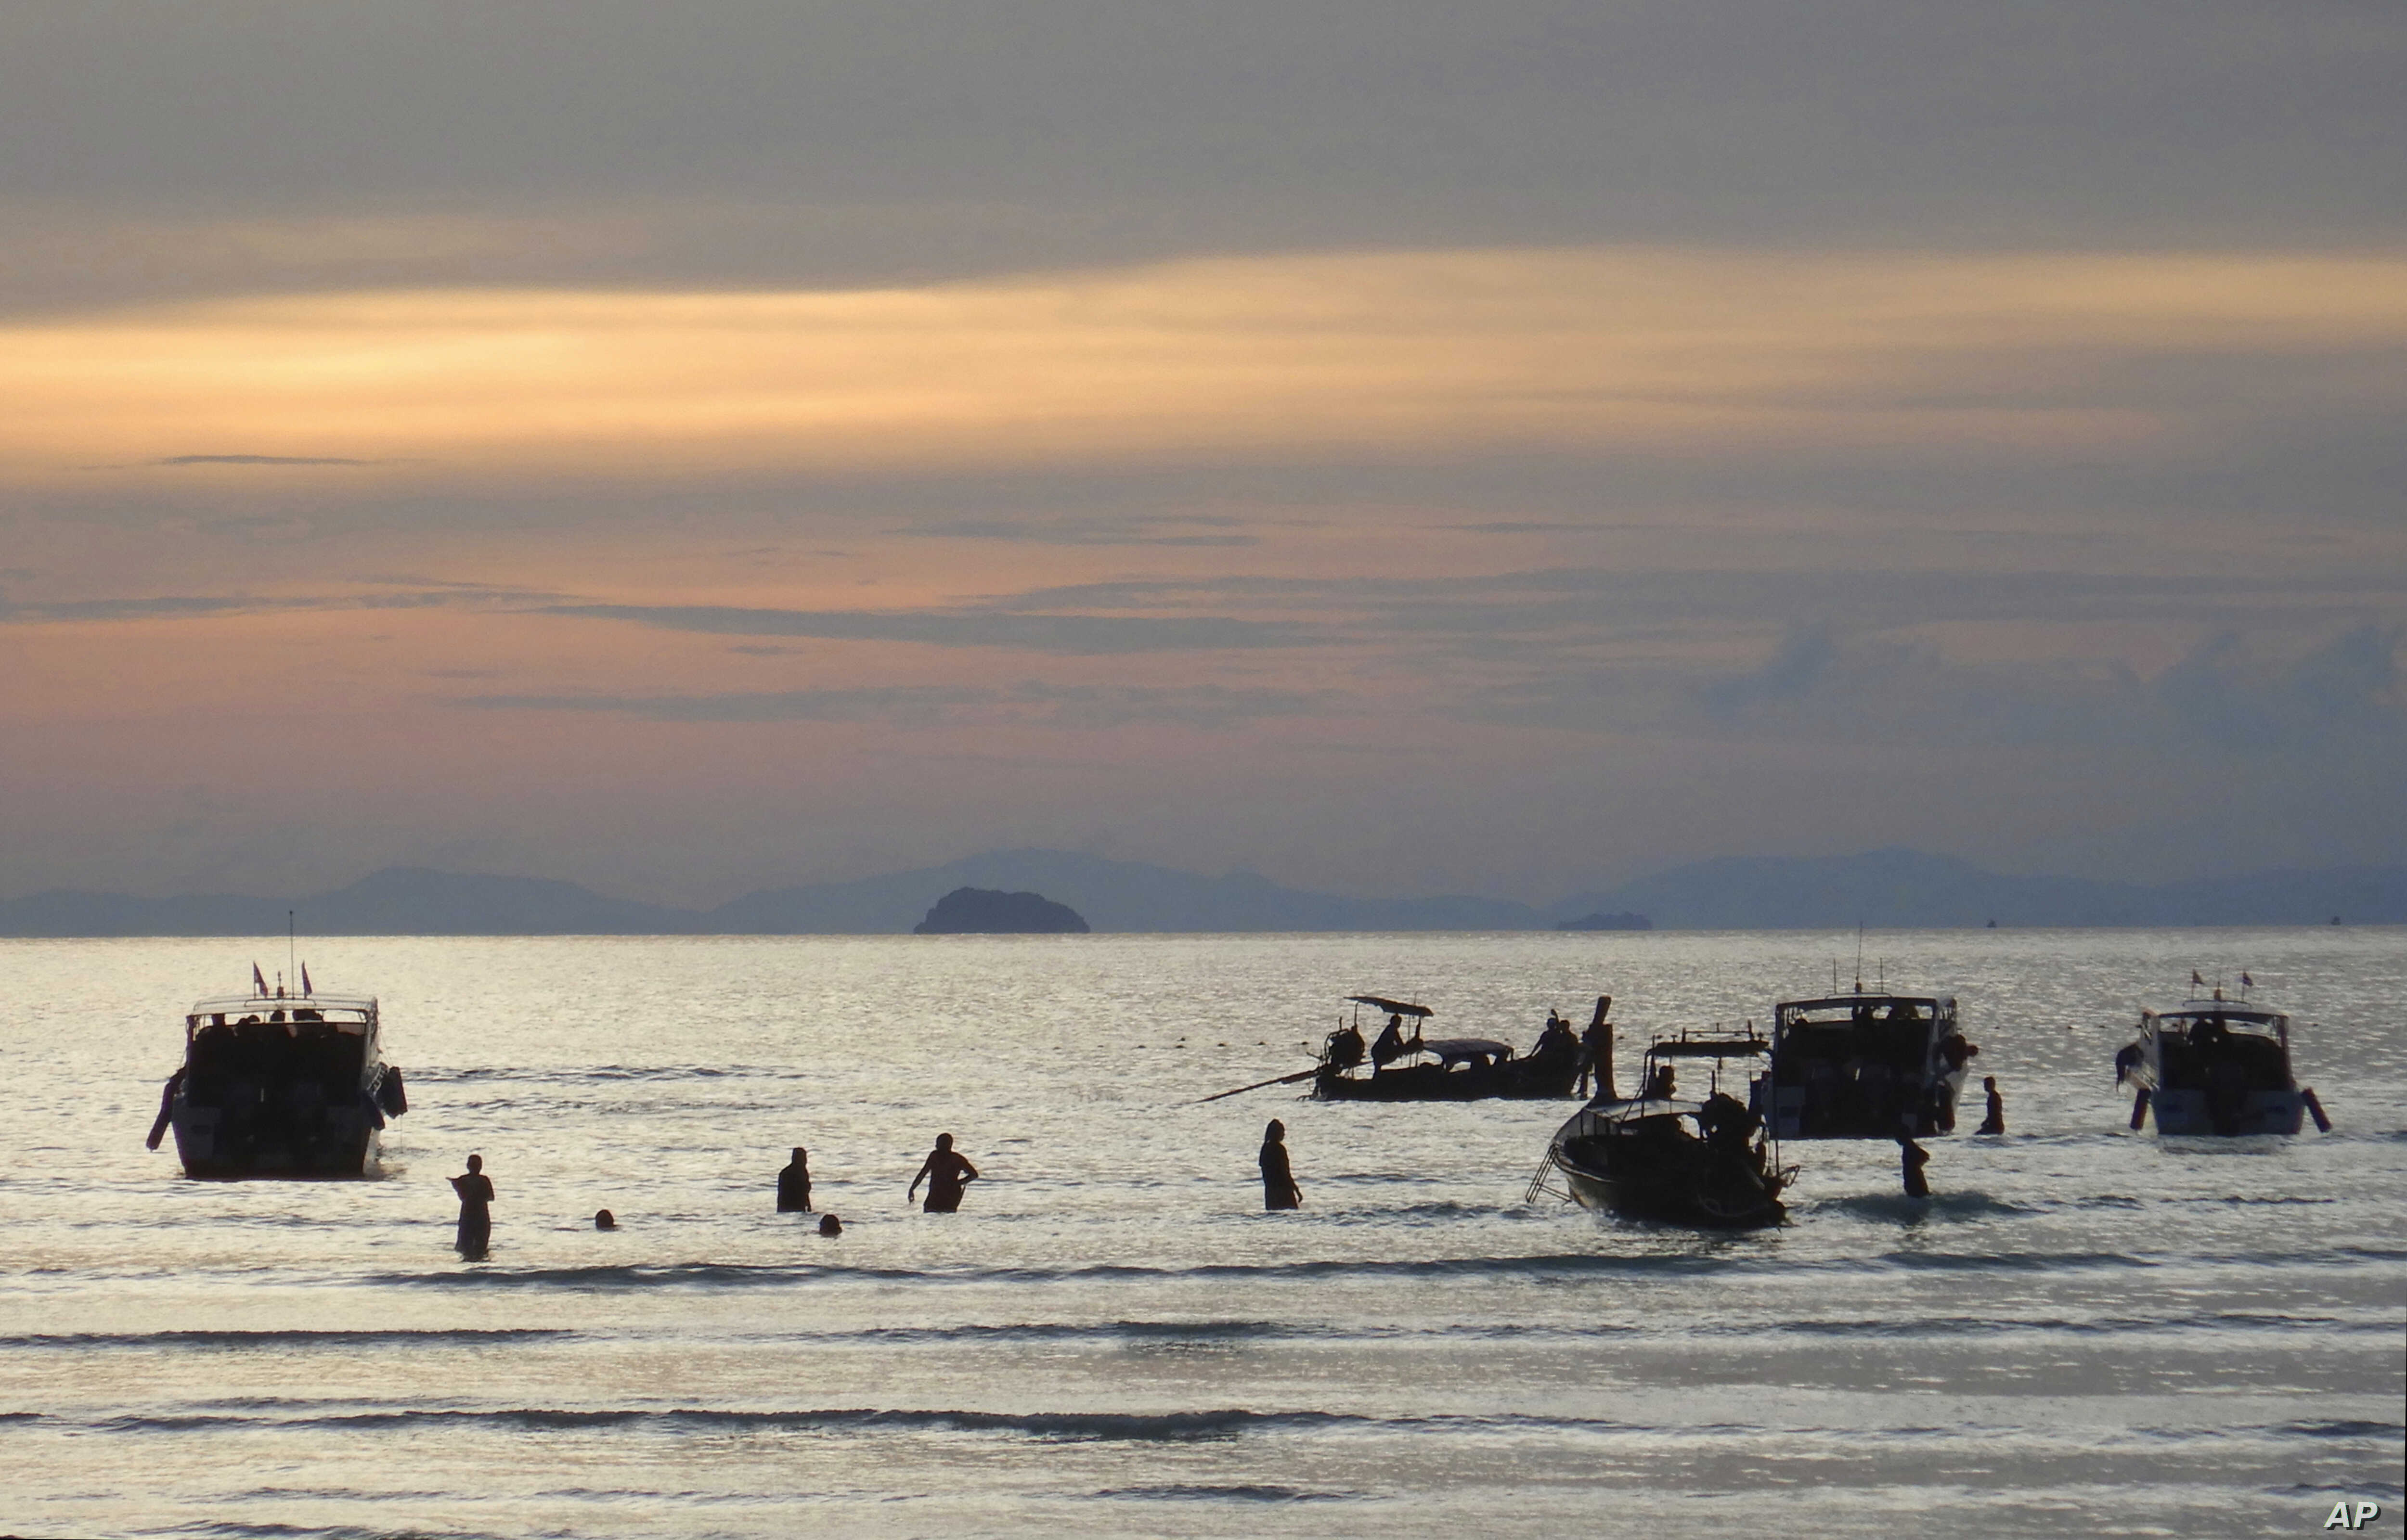 Tourists wade in the shallow water back to their boats from Maya Bay on Phi Phi Leh island, Krabi province, Thailand, May 31, 2018.